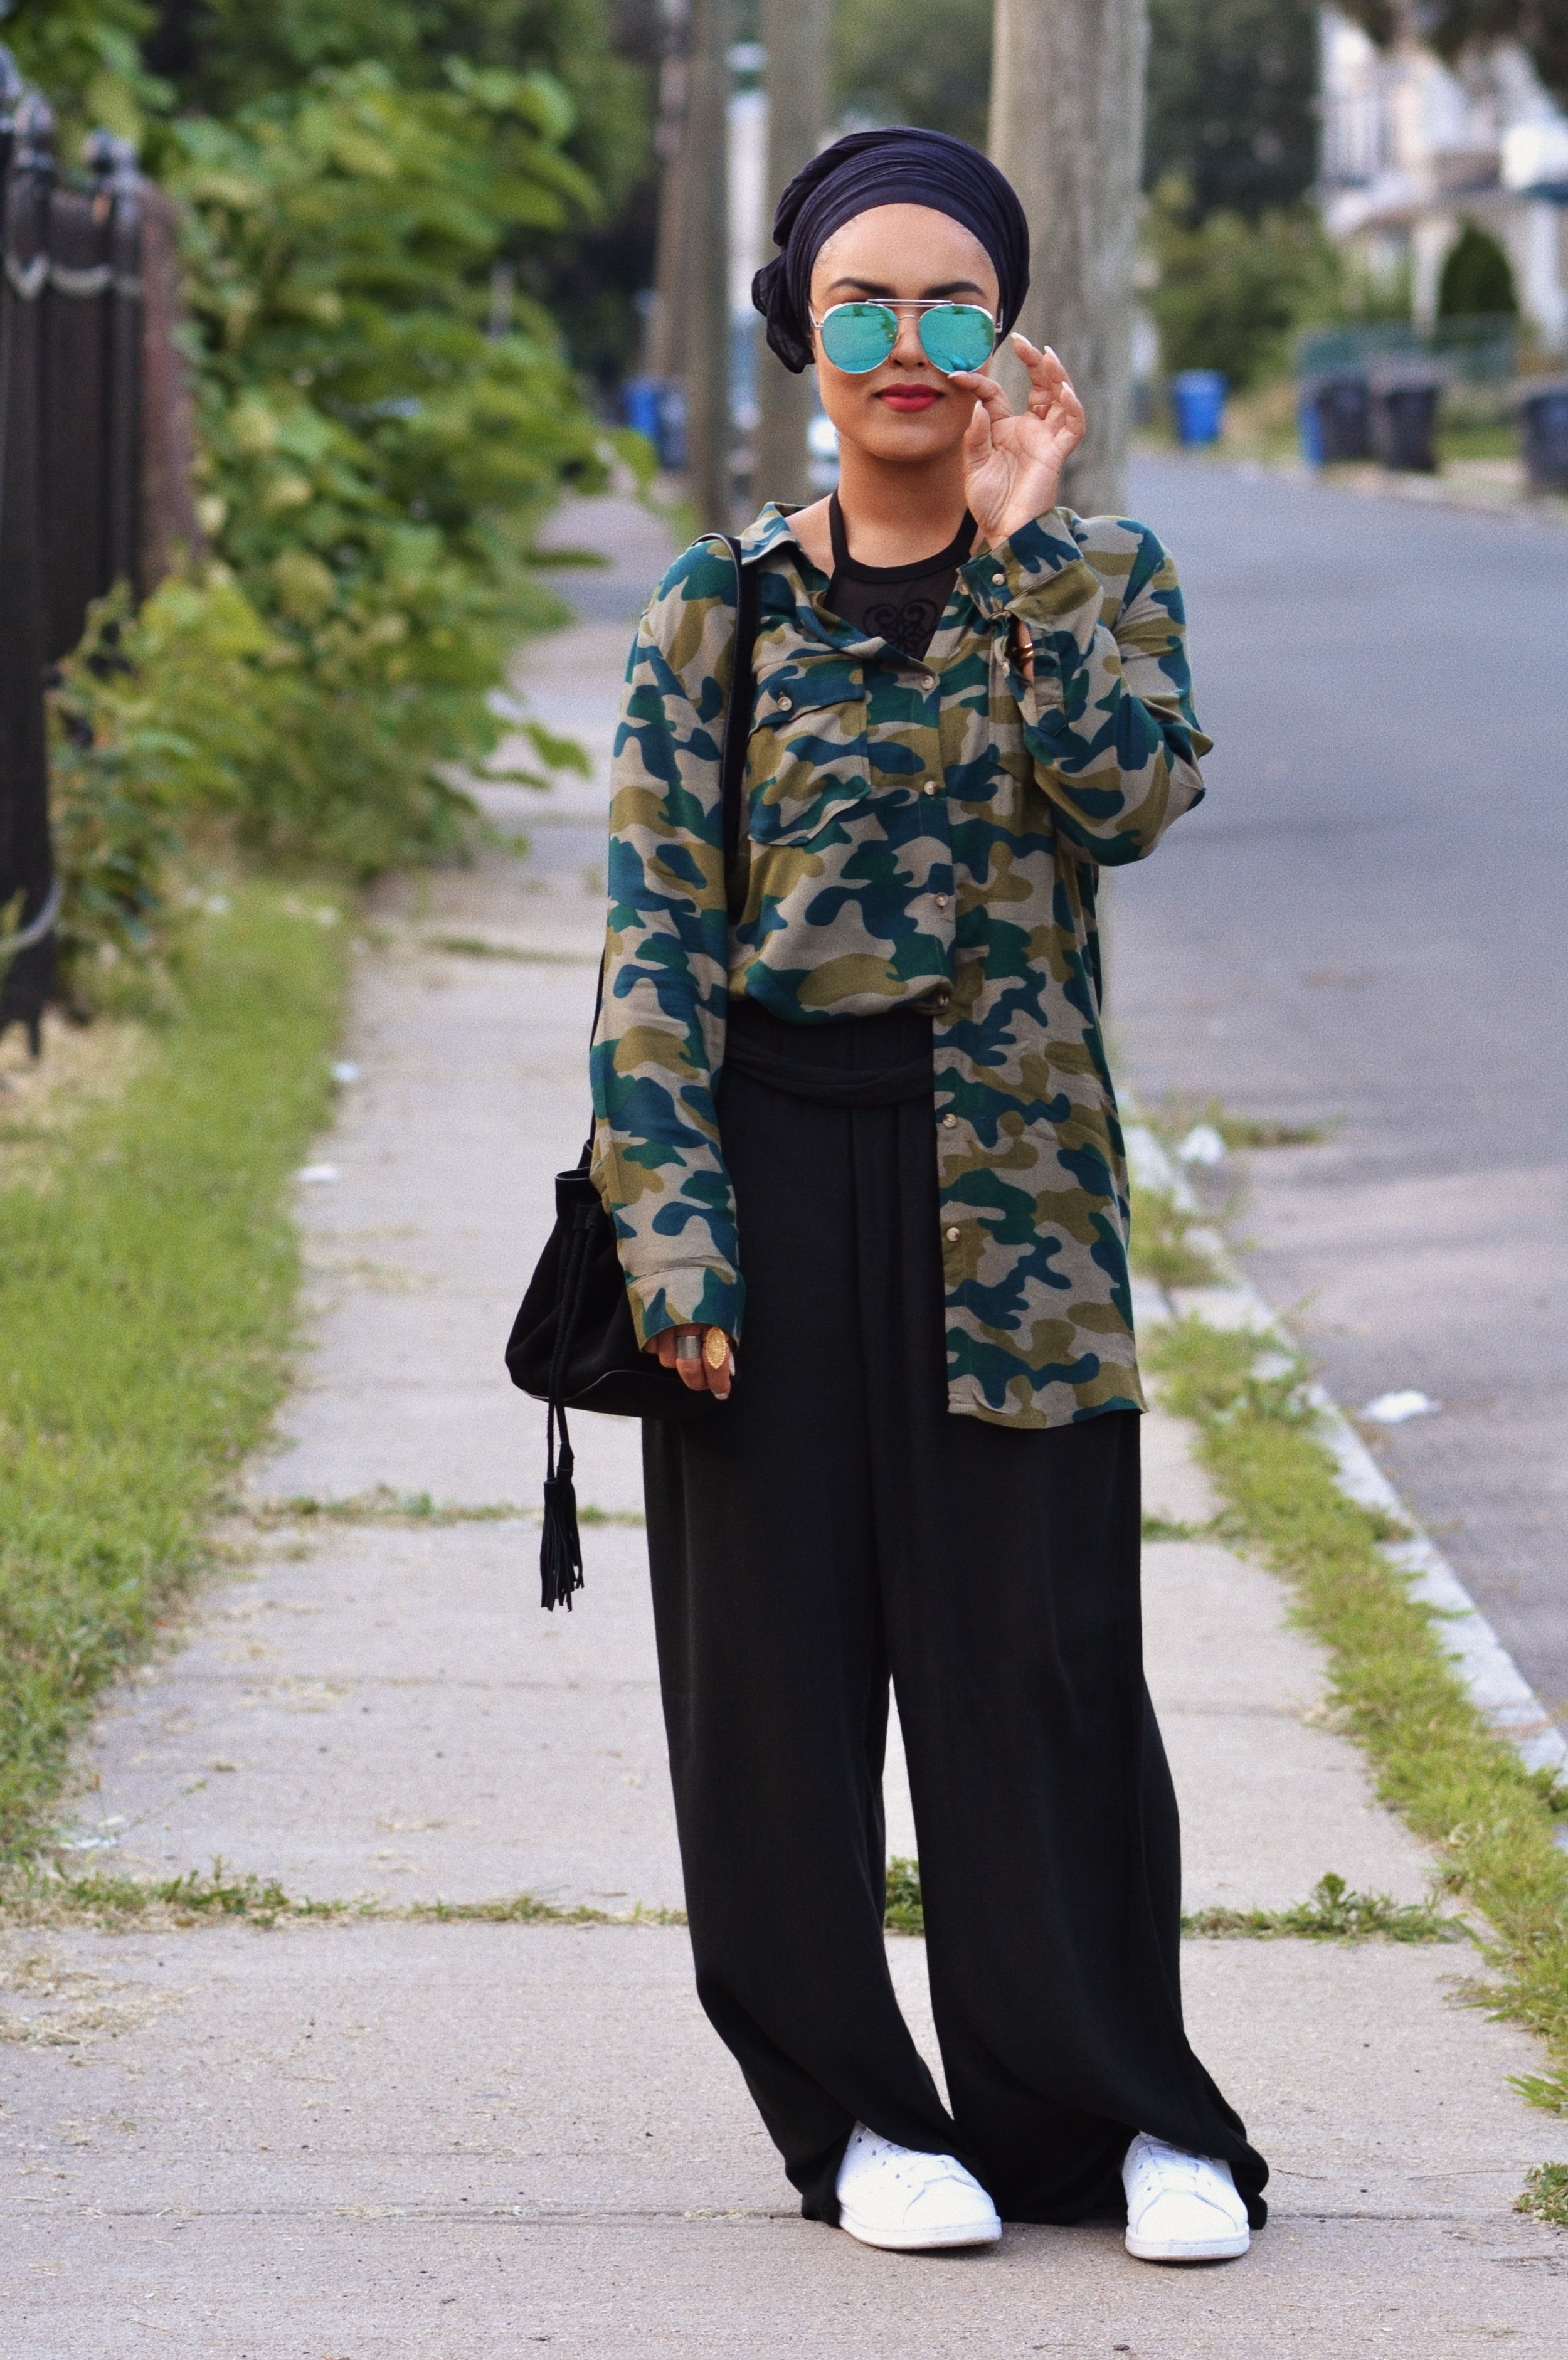 The LOOK – Camouflage Button Down (H&M) + Wide Leg Pants (Nordstrom Rack) + Body Suit (Rainbow) + Shoes (Stan Smith Adidas)